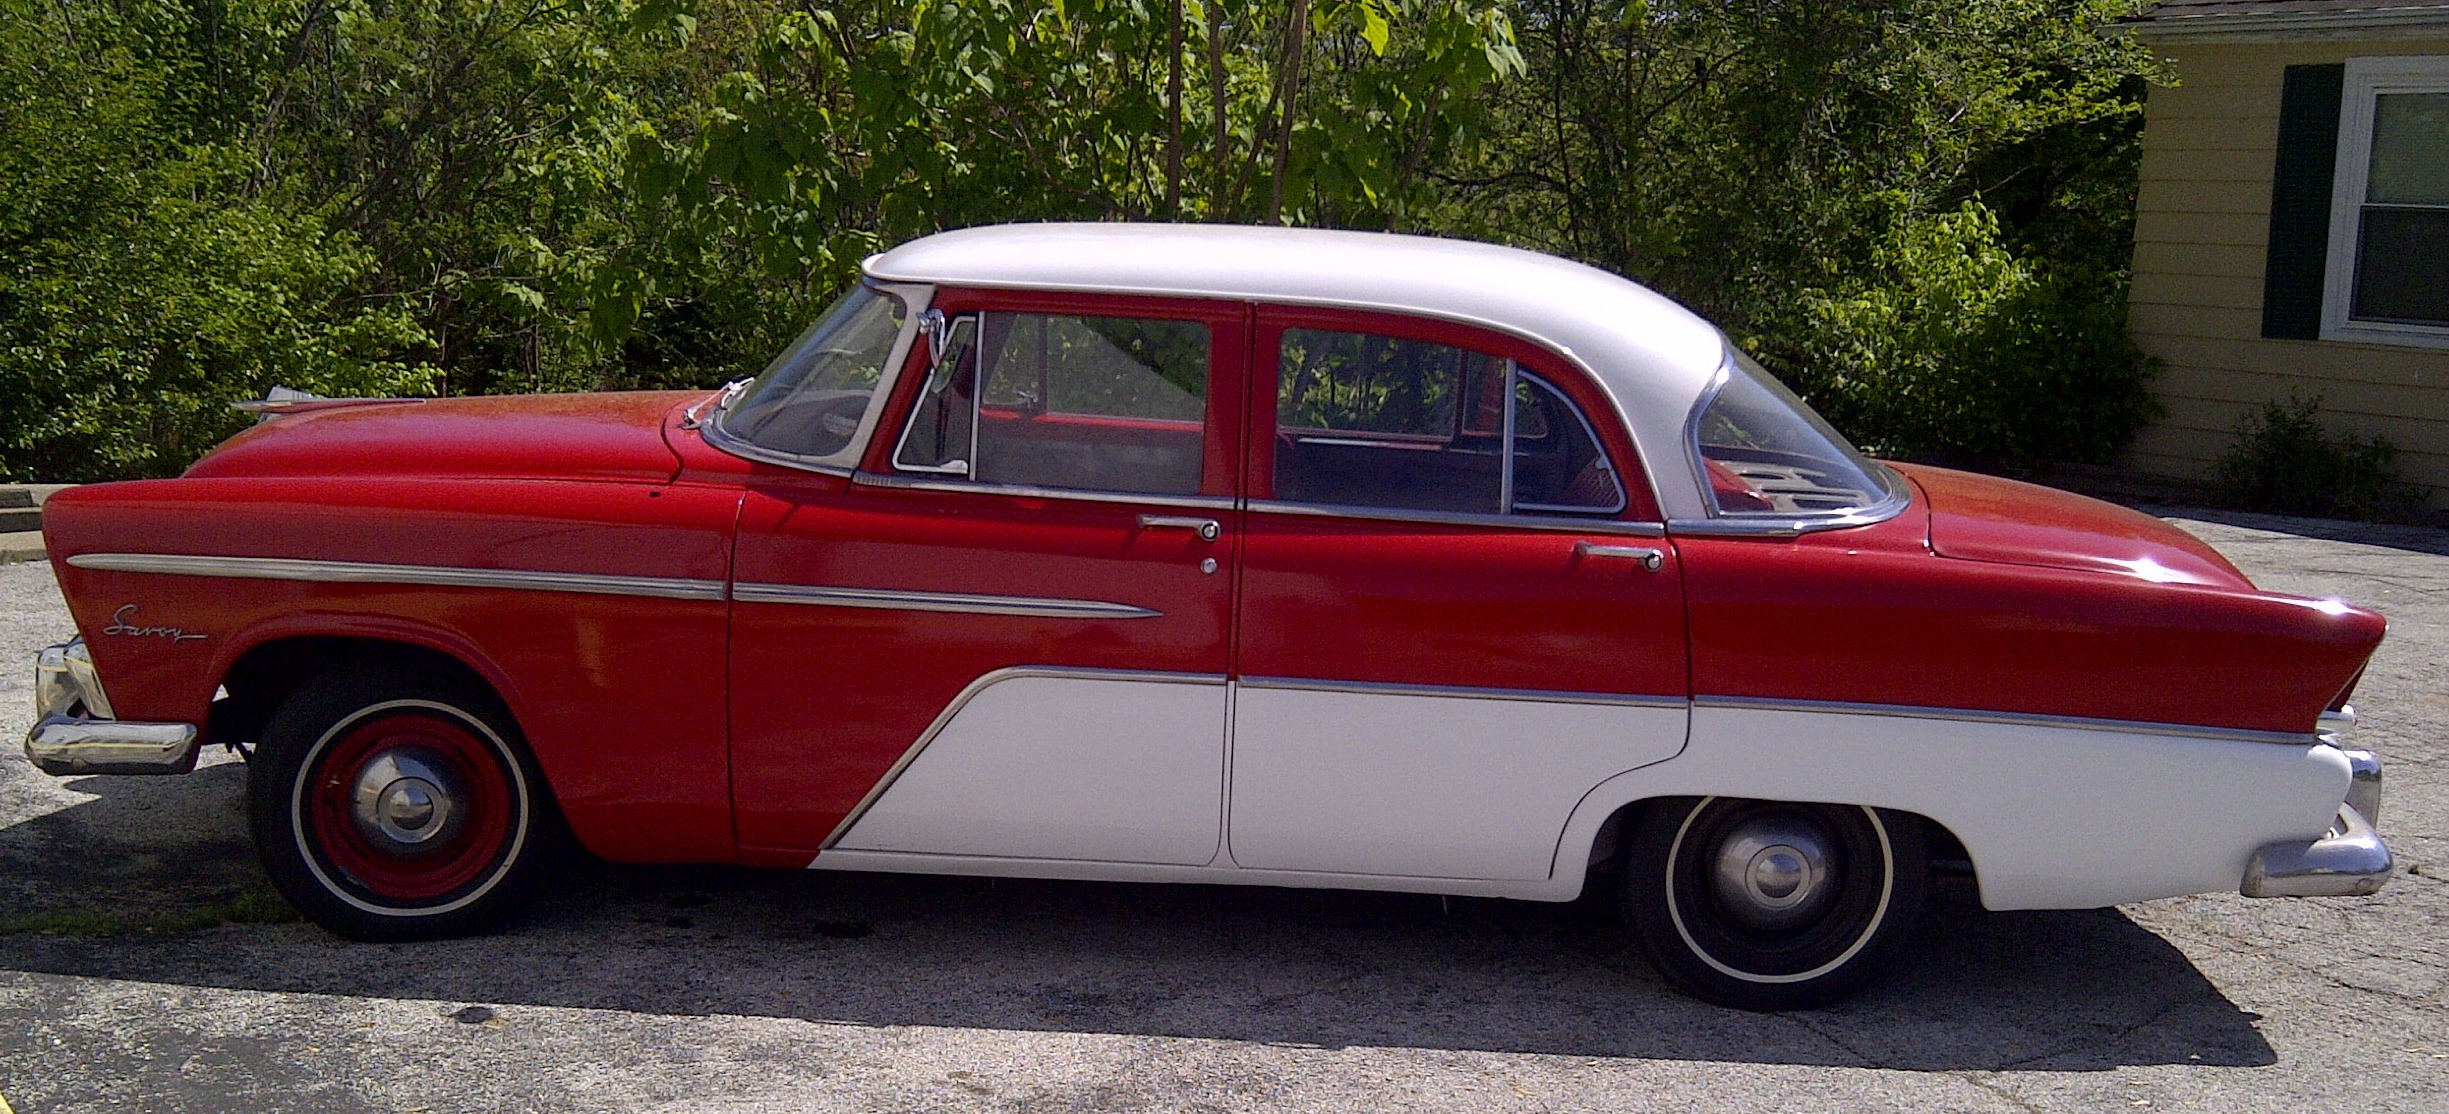 Curbside Classic The Elusive 1955 Plymouth Savoy 1950 To Cars Second